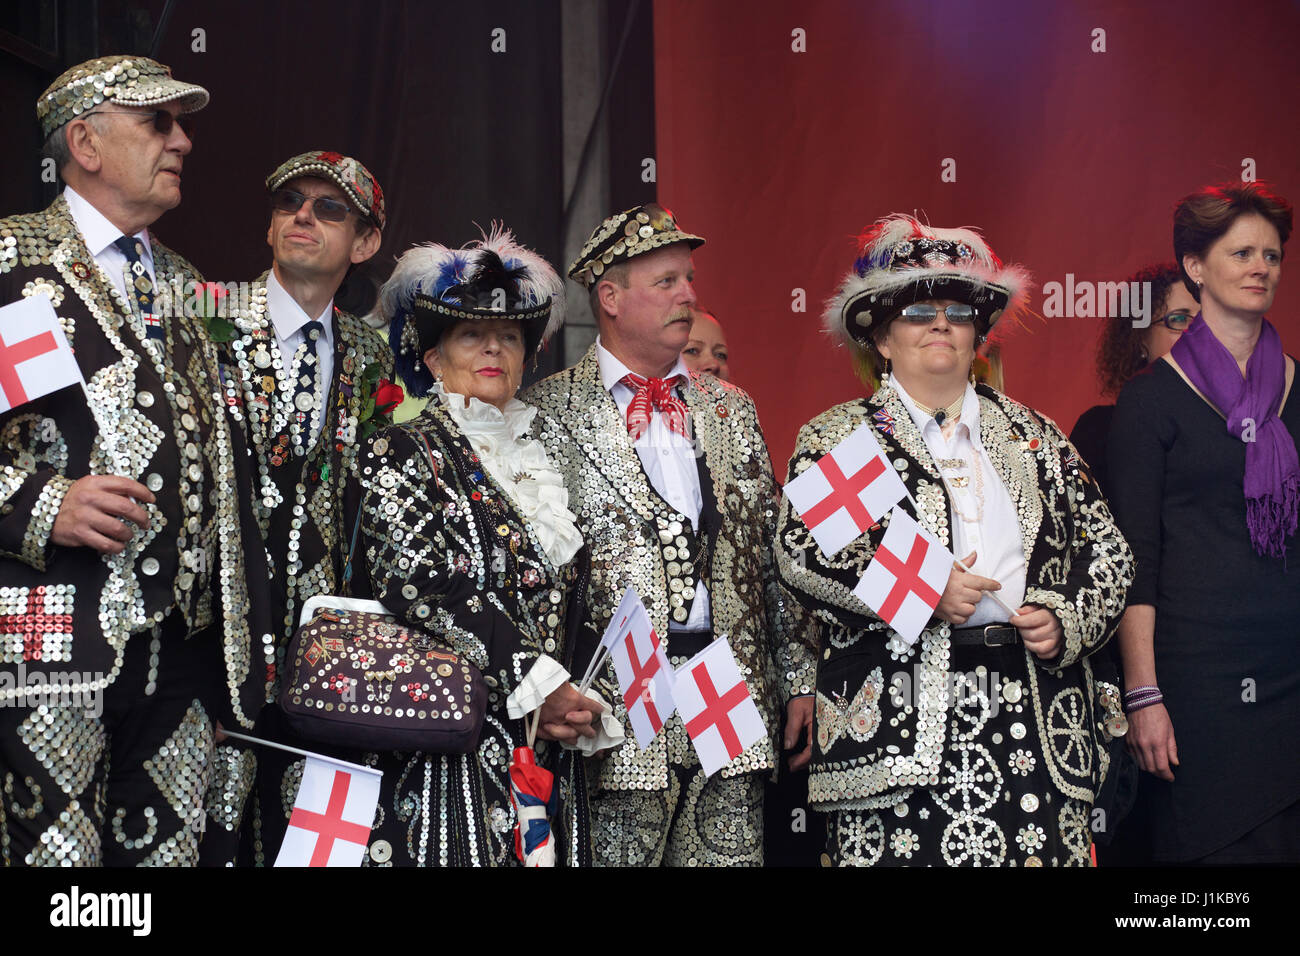 Trafalgar Square,UK,22nd April 2017,Pearly Kings and Queens attend The Annual Feast of St George celebrations which - Stock Image